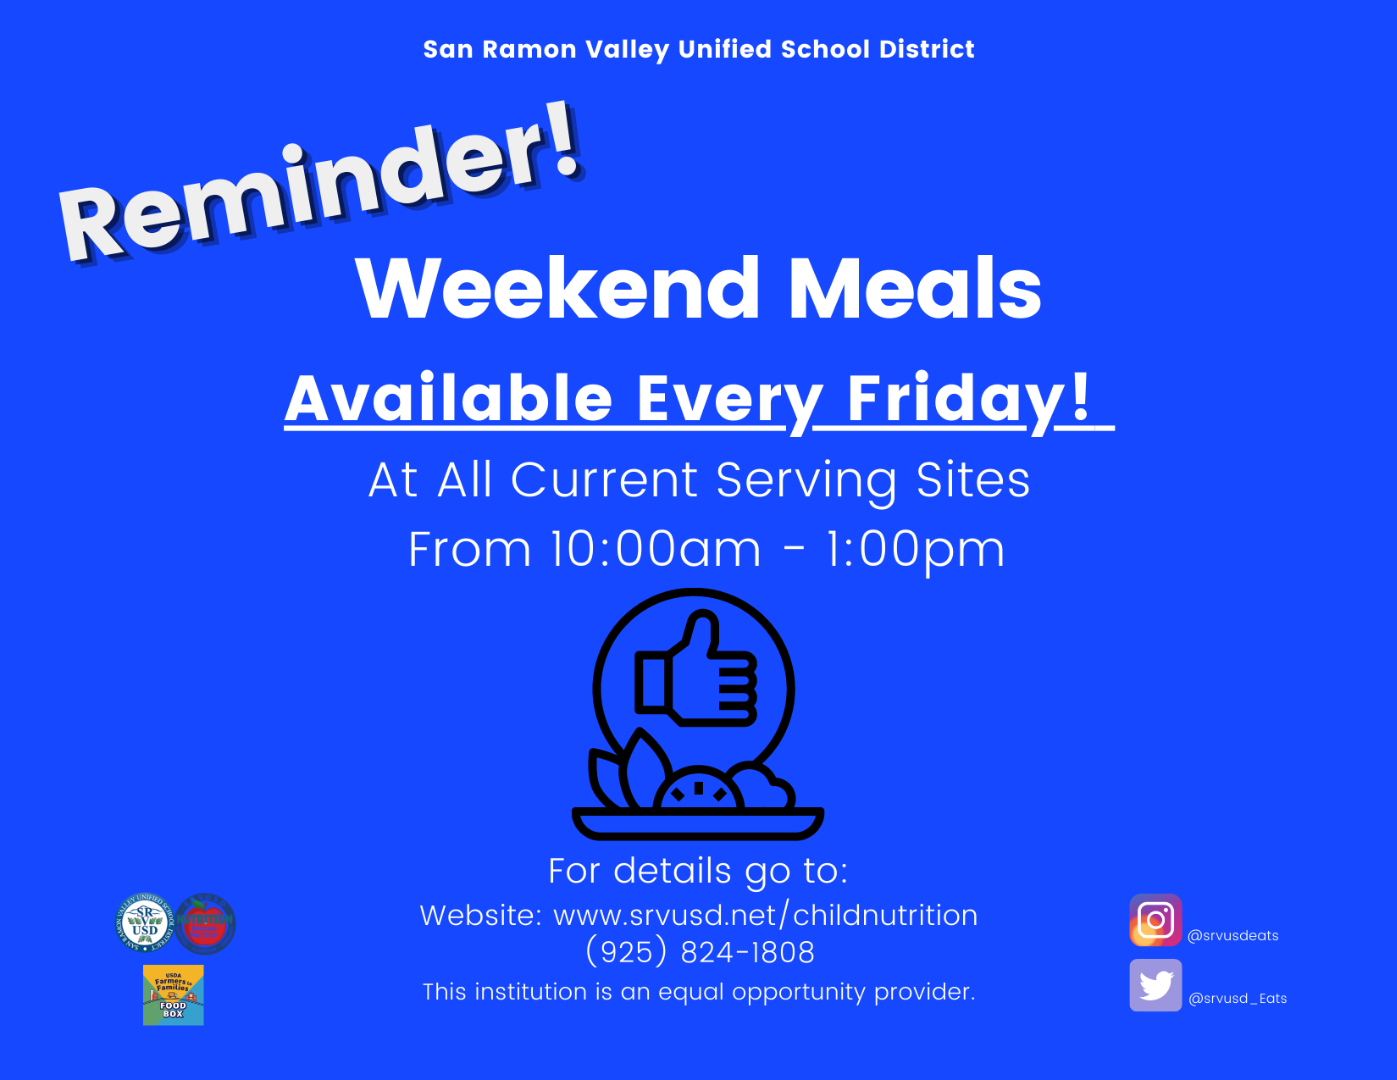 Weekend Meals Starting October 9th